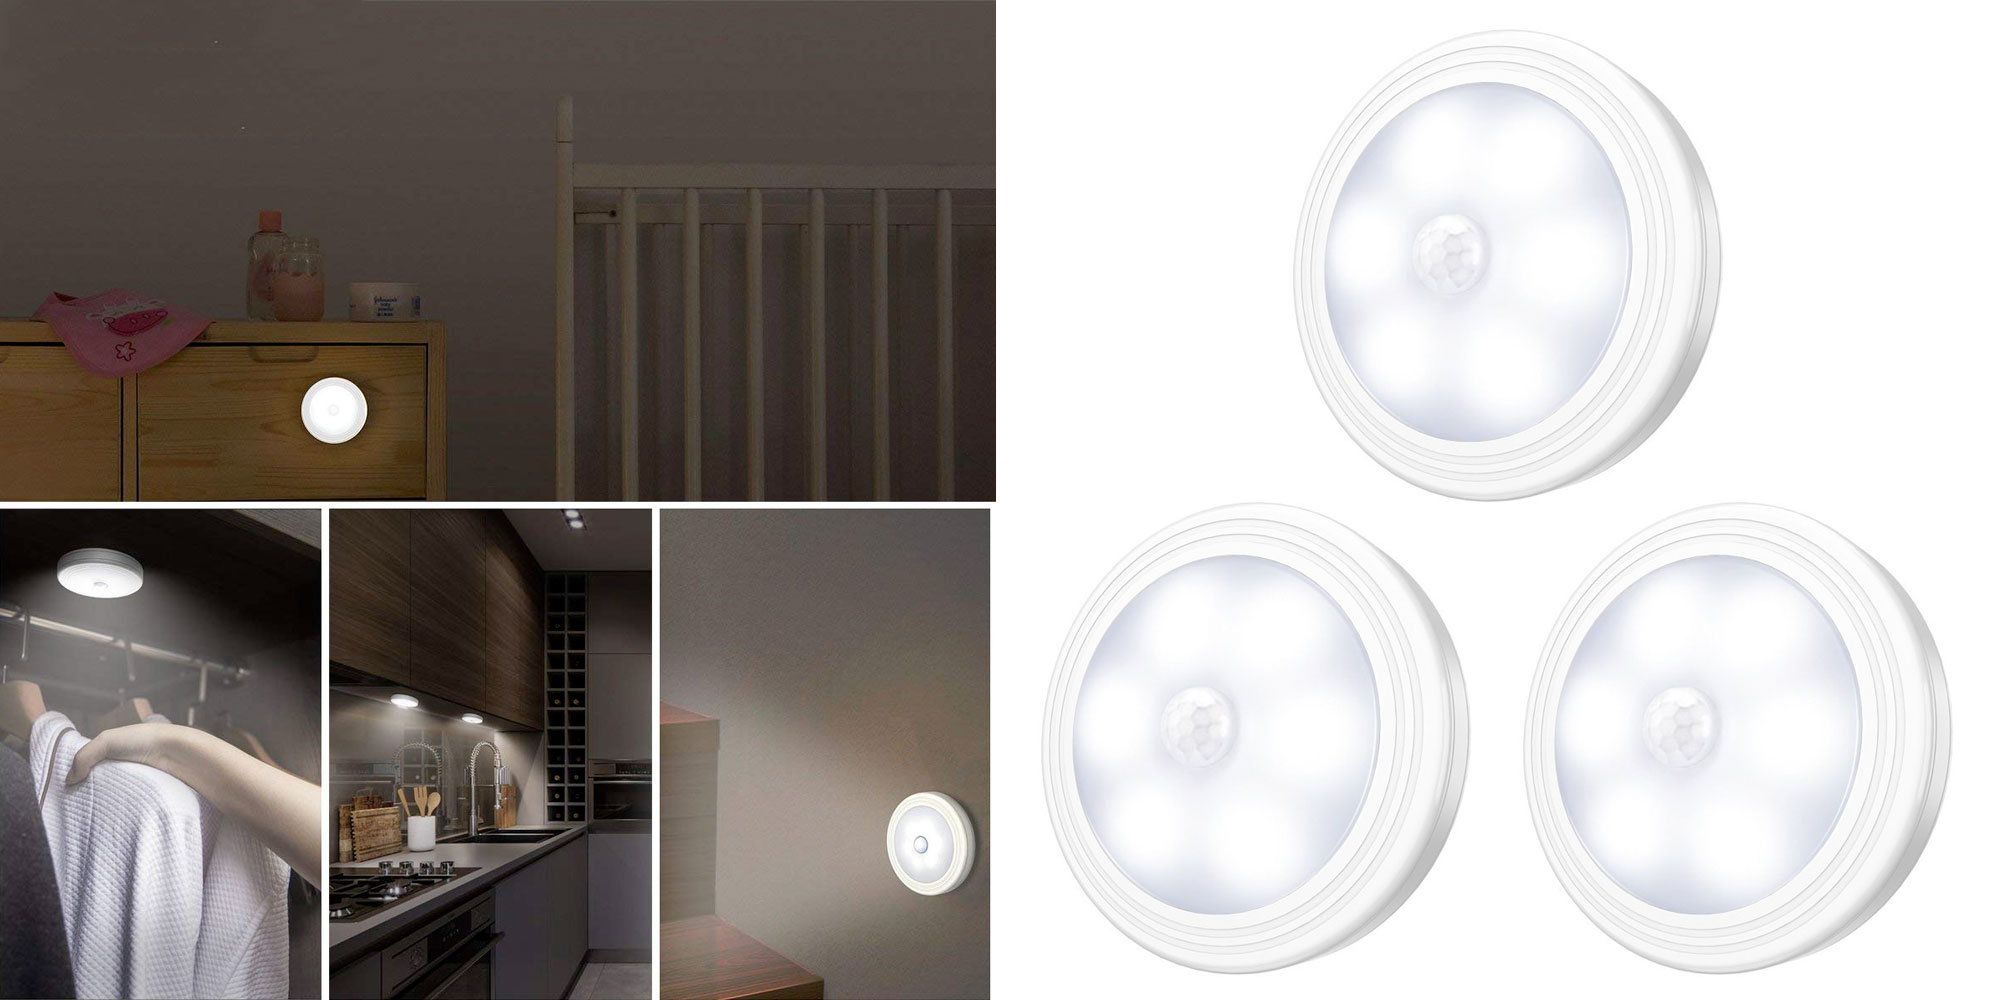 This 3 Pk Of Motion Sensing Led Lights Can Stick In Your